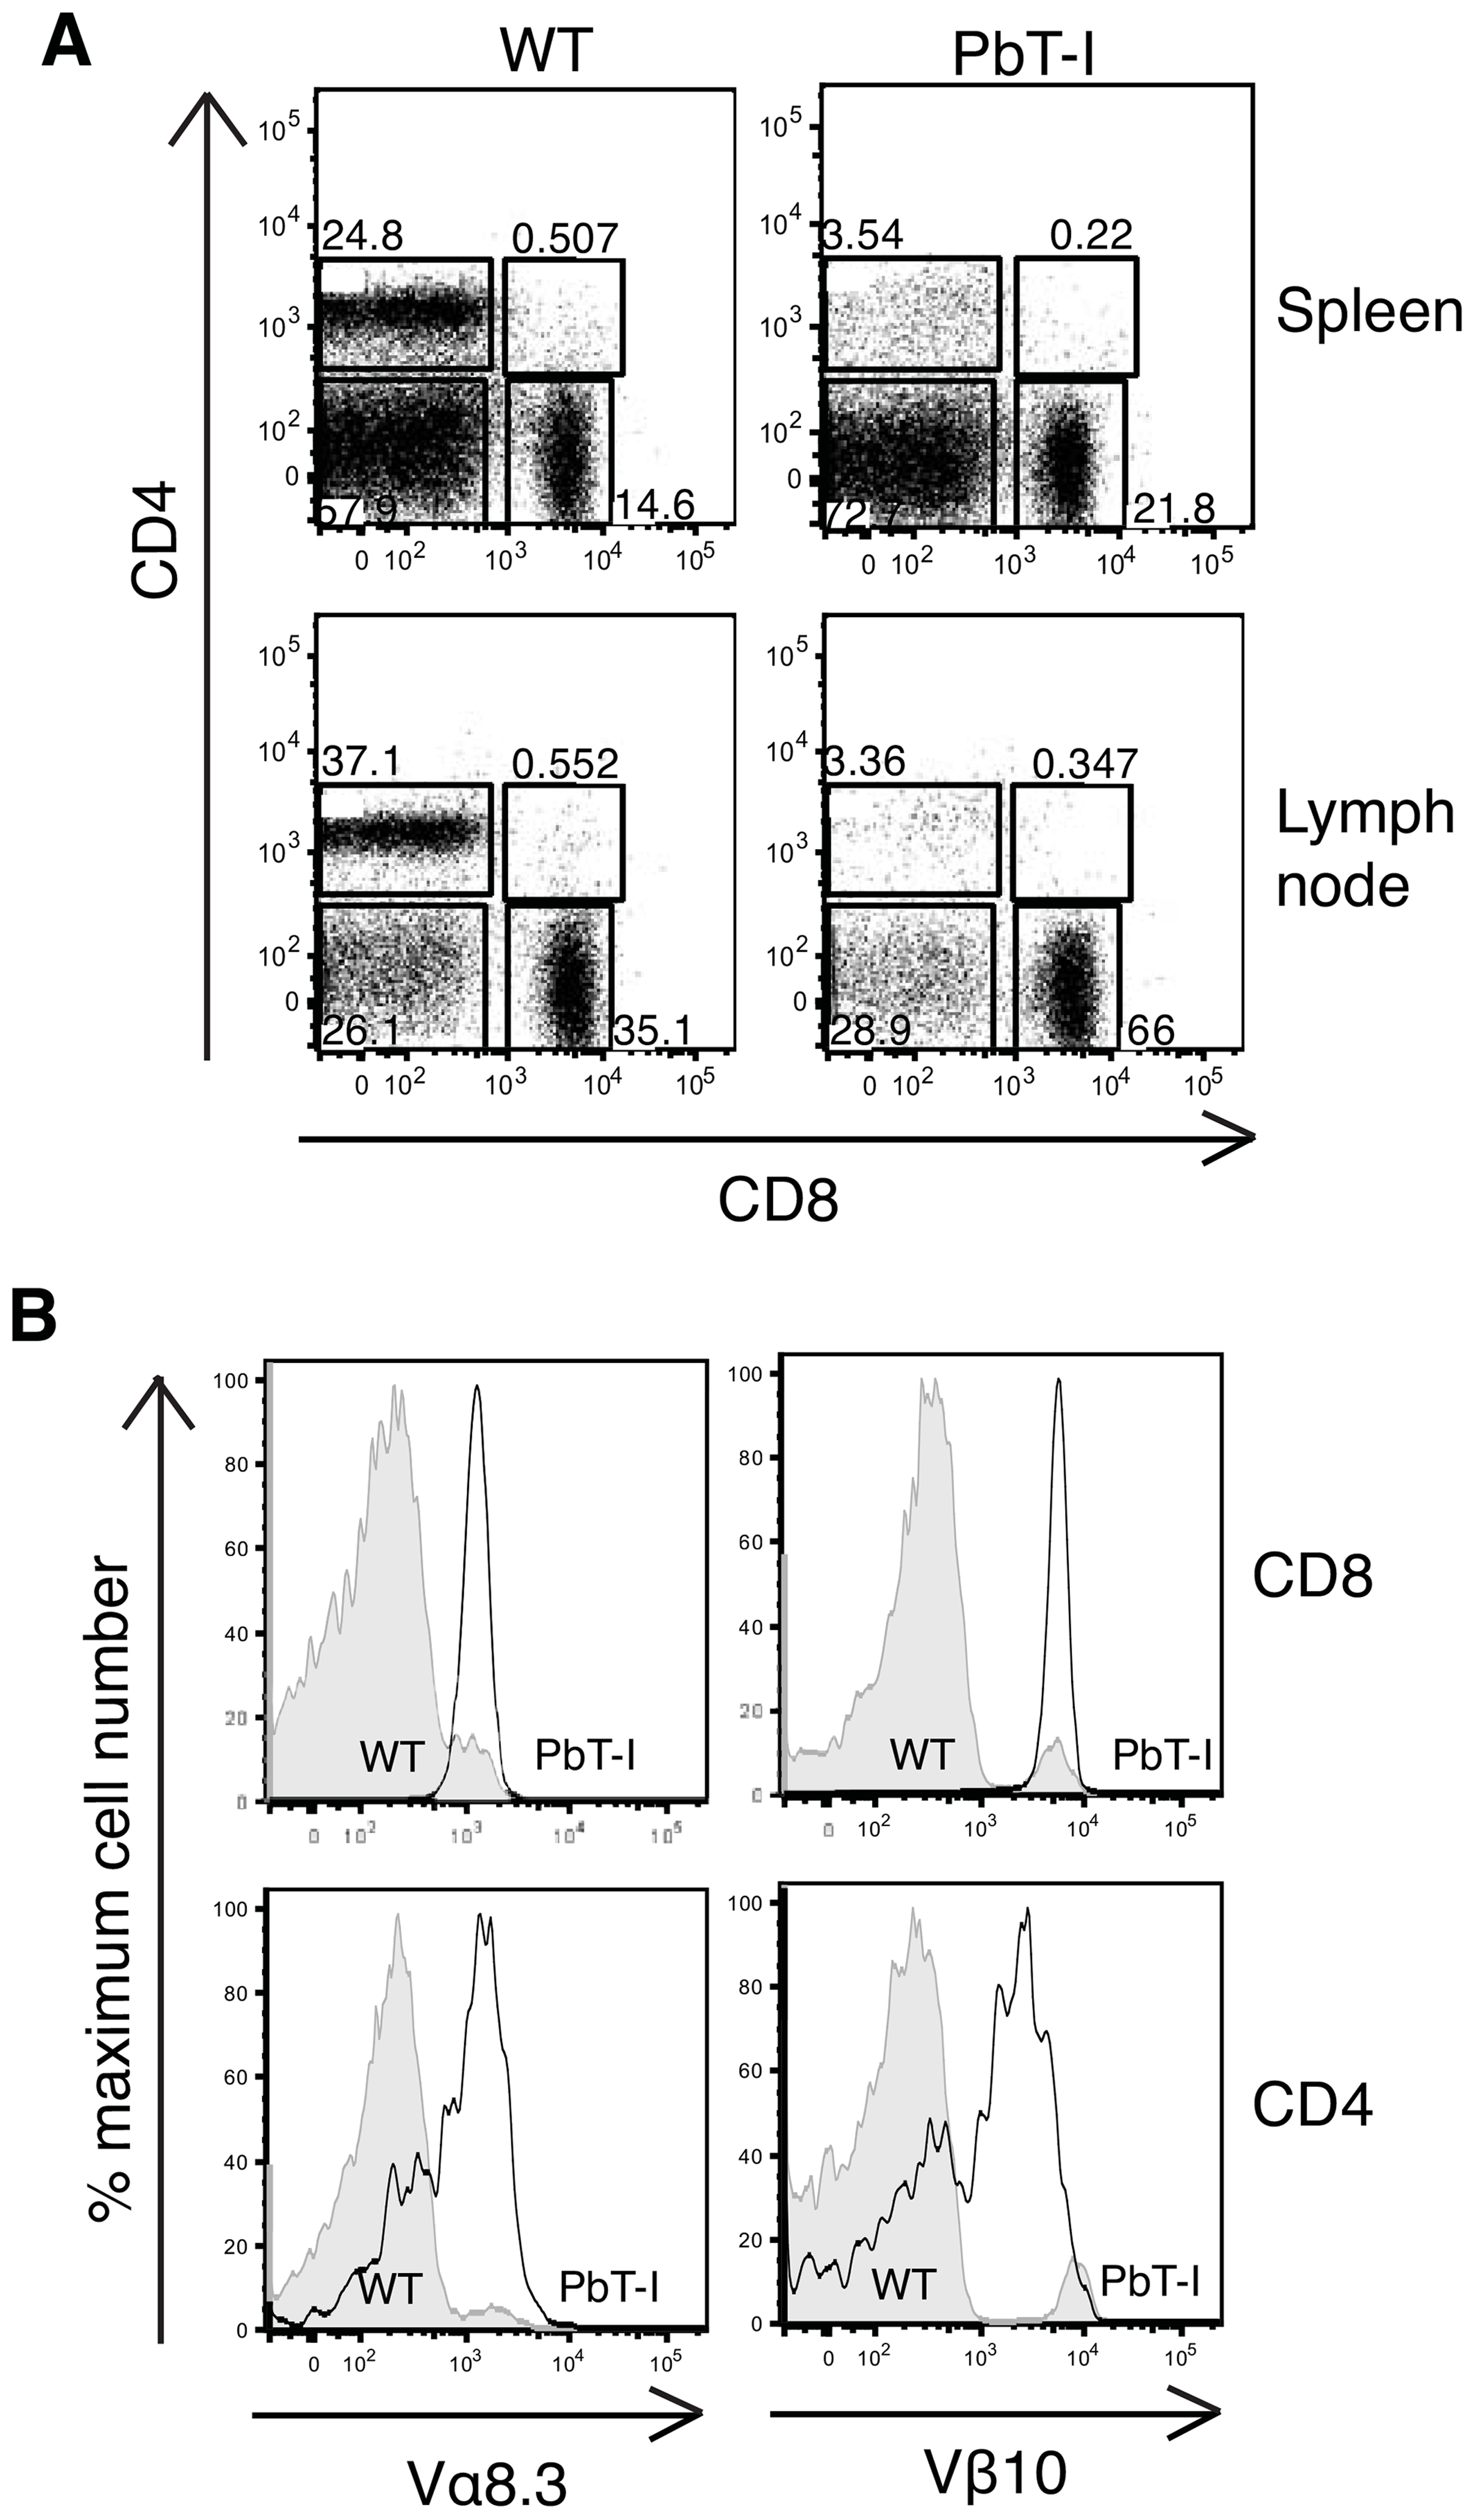 Characterization of T cells from the spleen and lymph node of PbT-I mice.